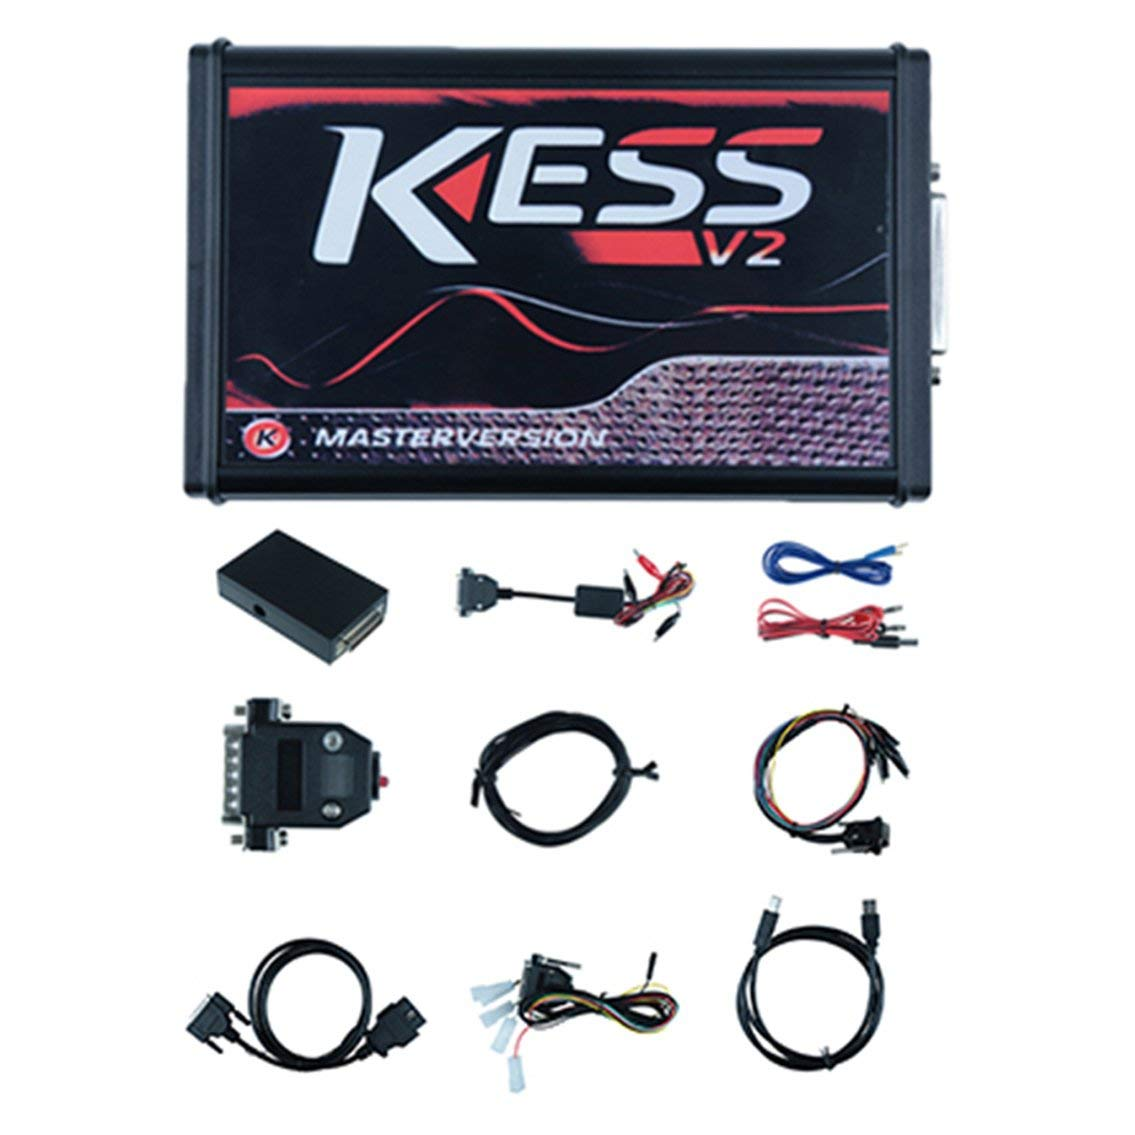 WA0069B KESS V2 5.017 Master Version Kein Token ECU Programmierwerkzeug OBD2 Manager Tuning Kit Auto Diagnose-Tool Set